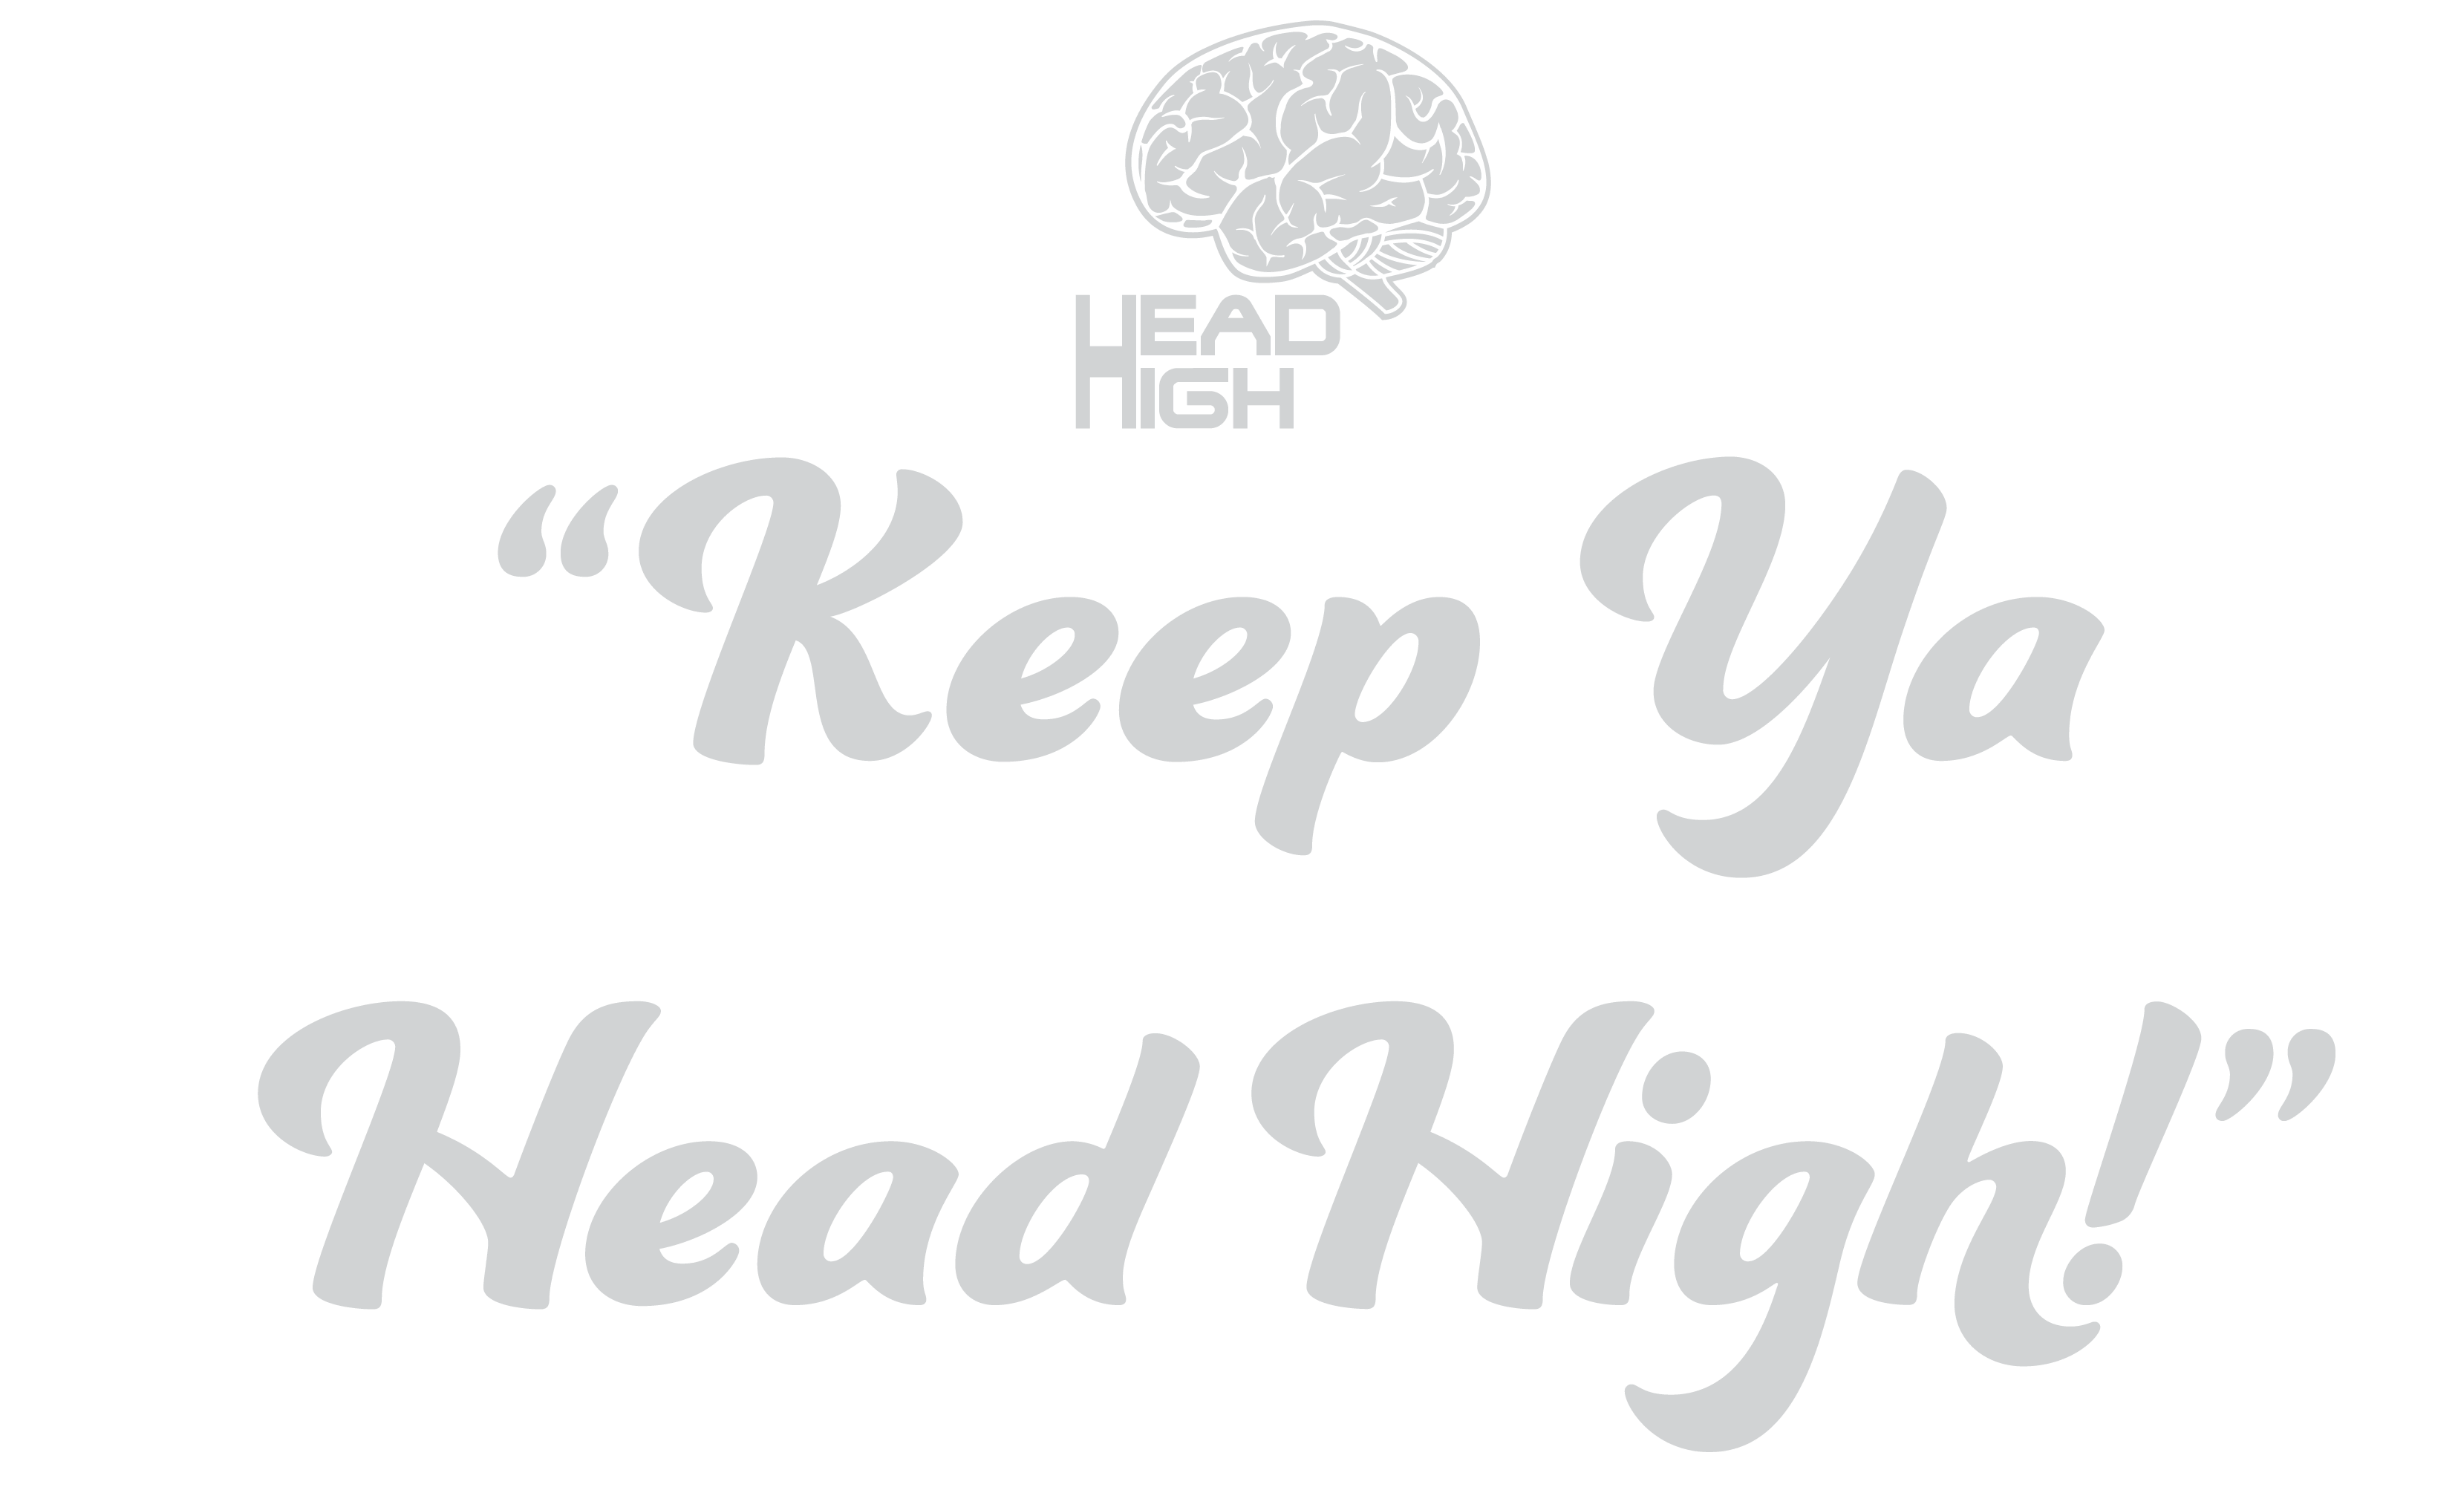 KeepYaHeadHigh